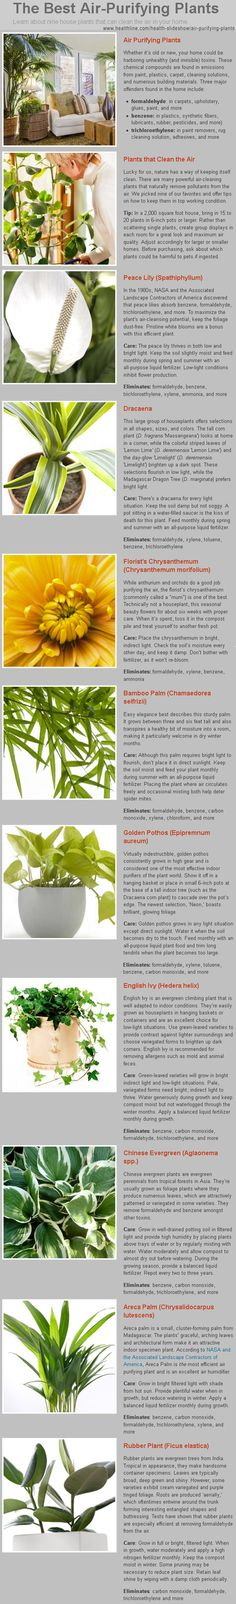 Air Purifying Plants for Healthy Indoor Air. NASA researchers determined which plants would be required on a sustainable earth ship. www.healthline.com/health-slideshow/air-purifying-plants